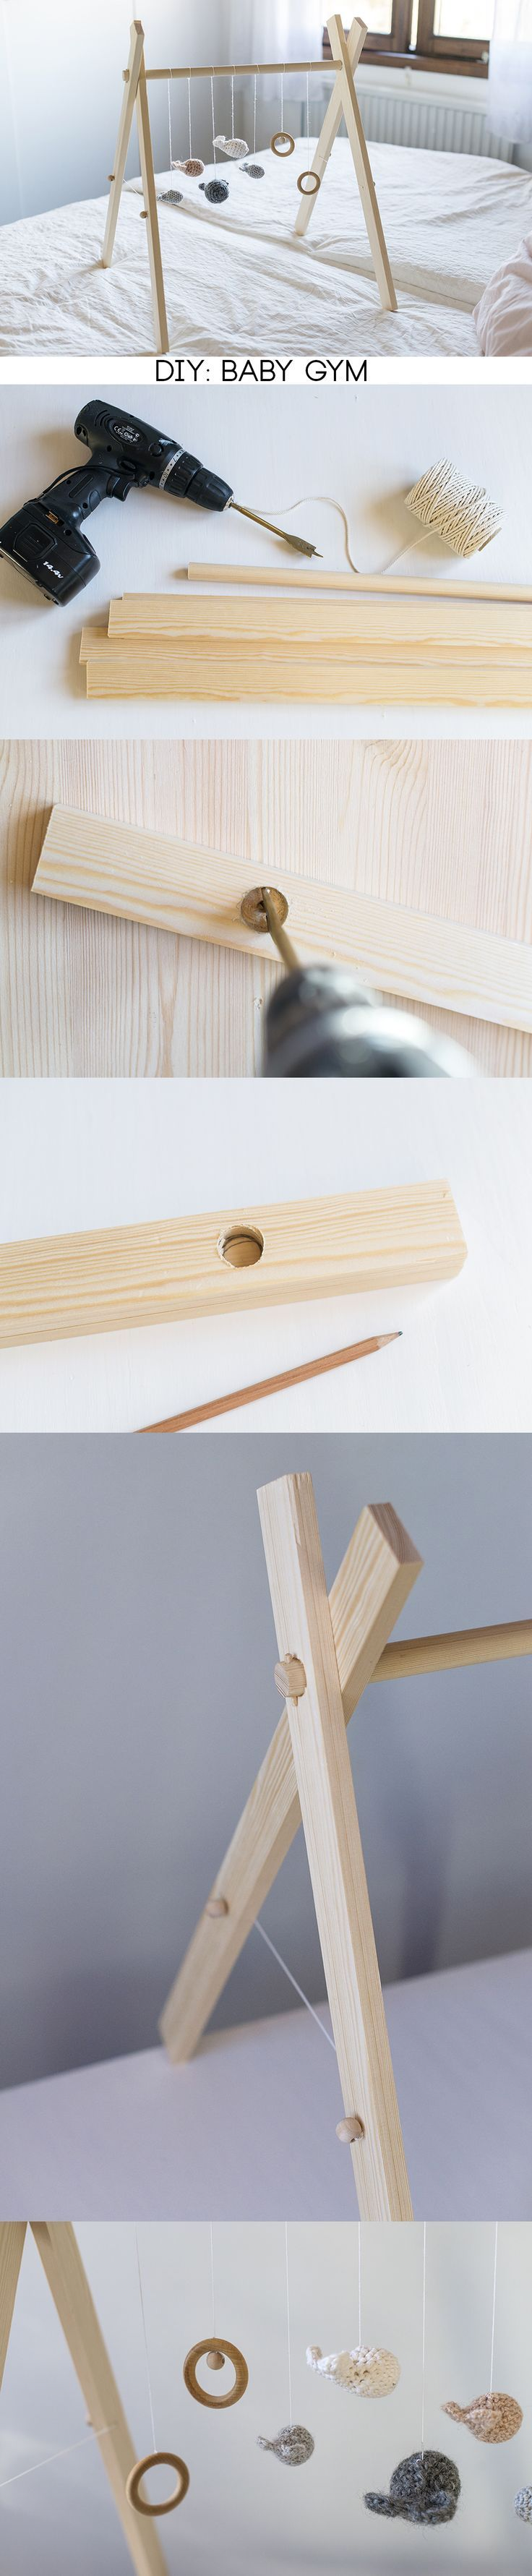 Looking to find tips with regards to wood working? www.woodesigner.net provides these things!